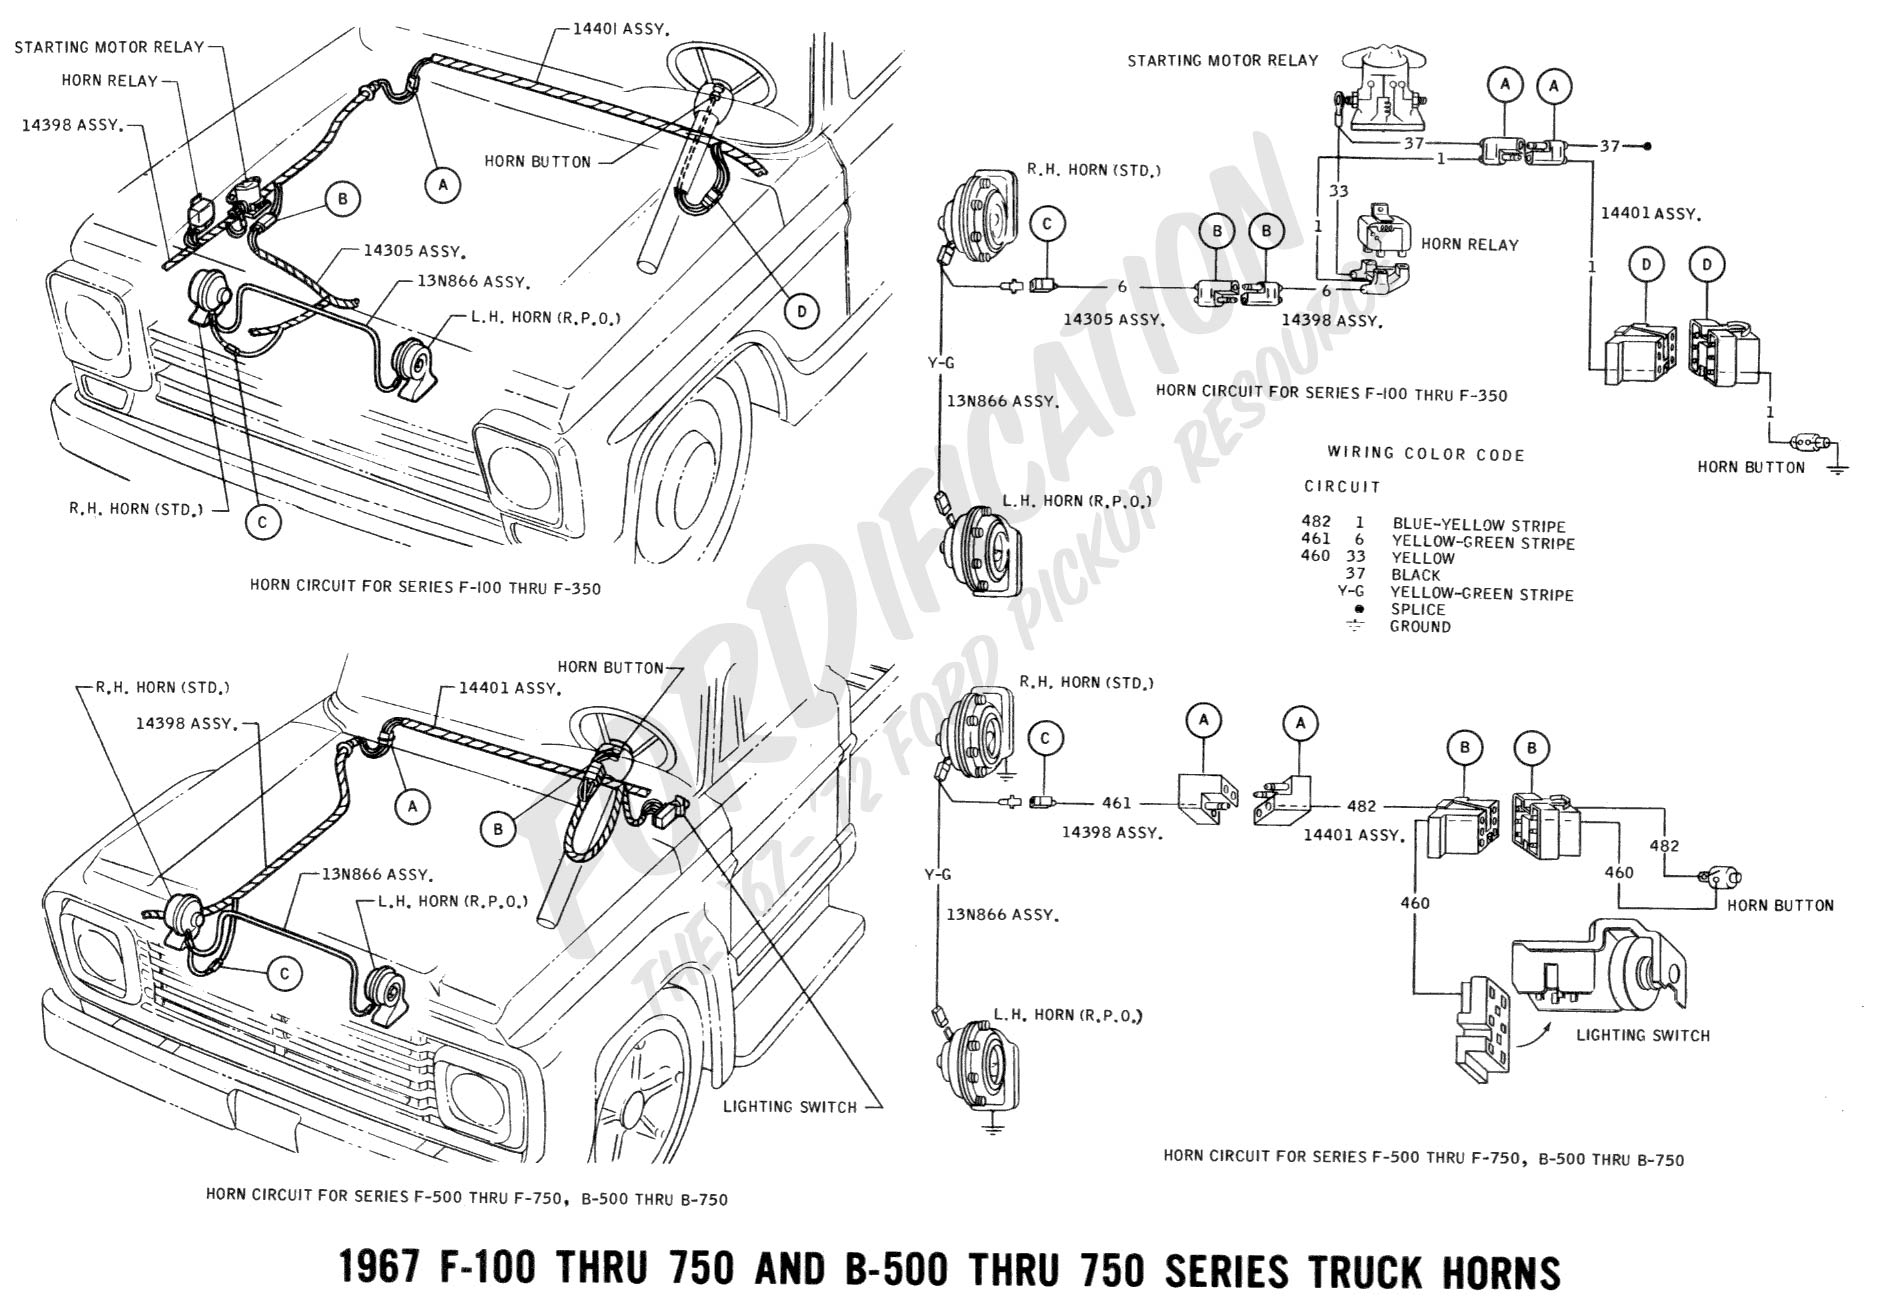 Schematics h on dodge truck wiring diagram